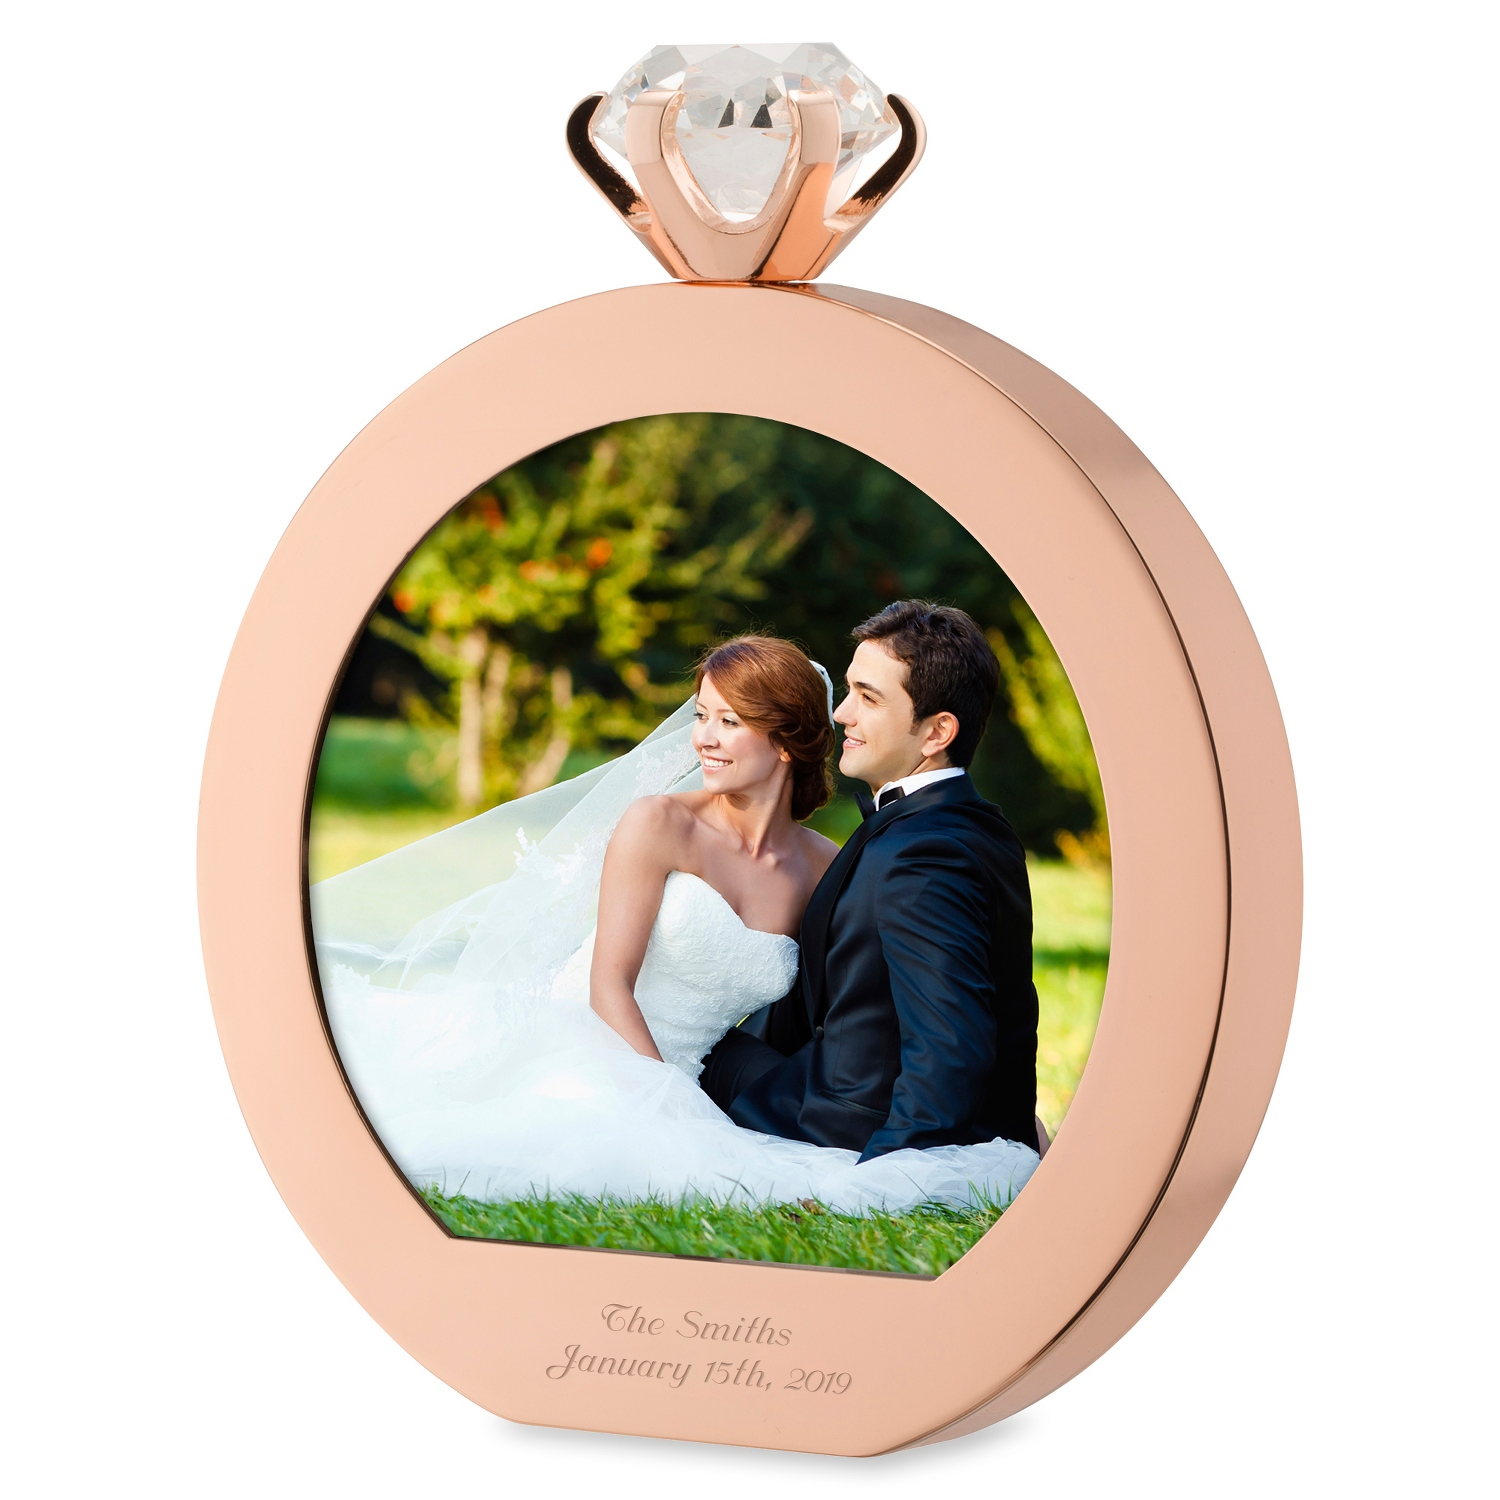 Wedding frames photo gifts at things remembered rose gold diamond ring frame jeuxipadfo Images